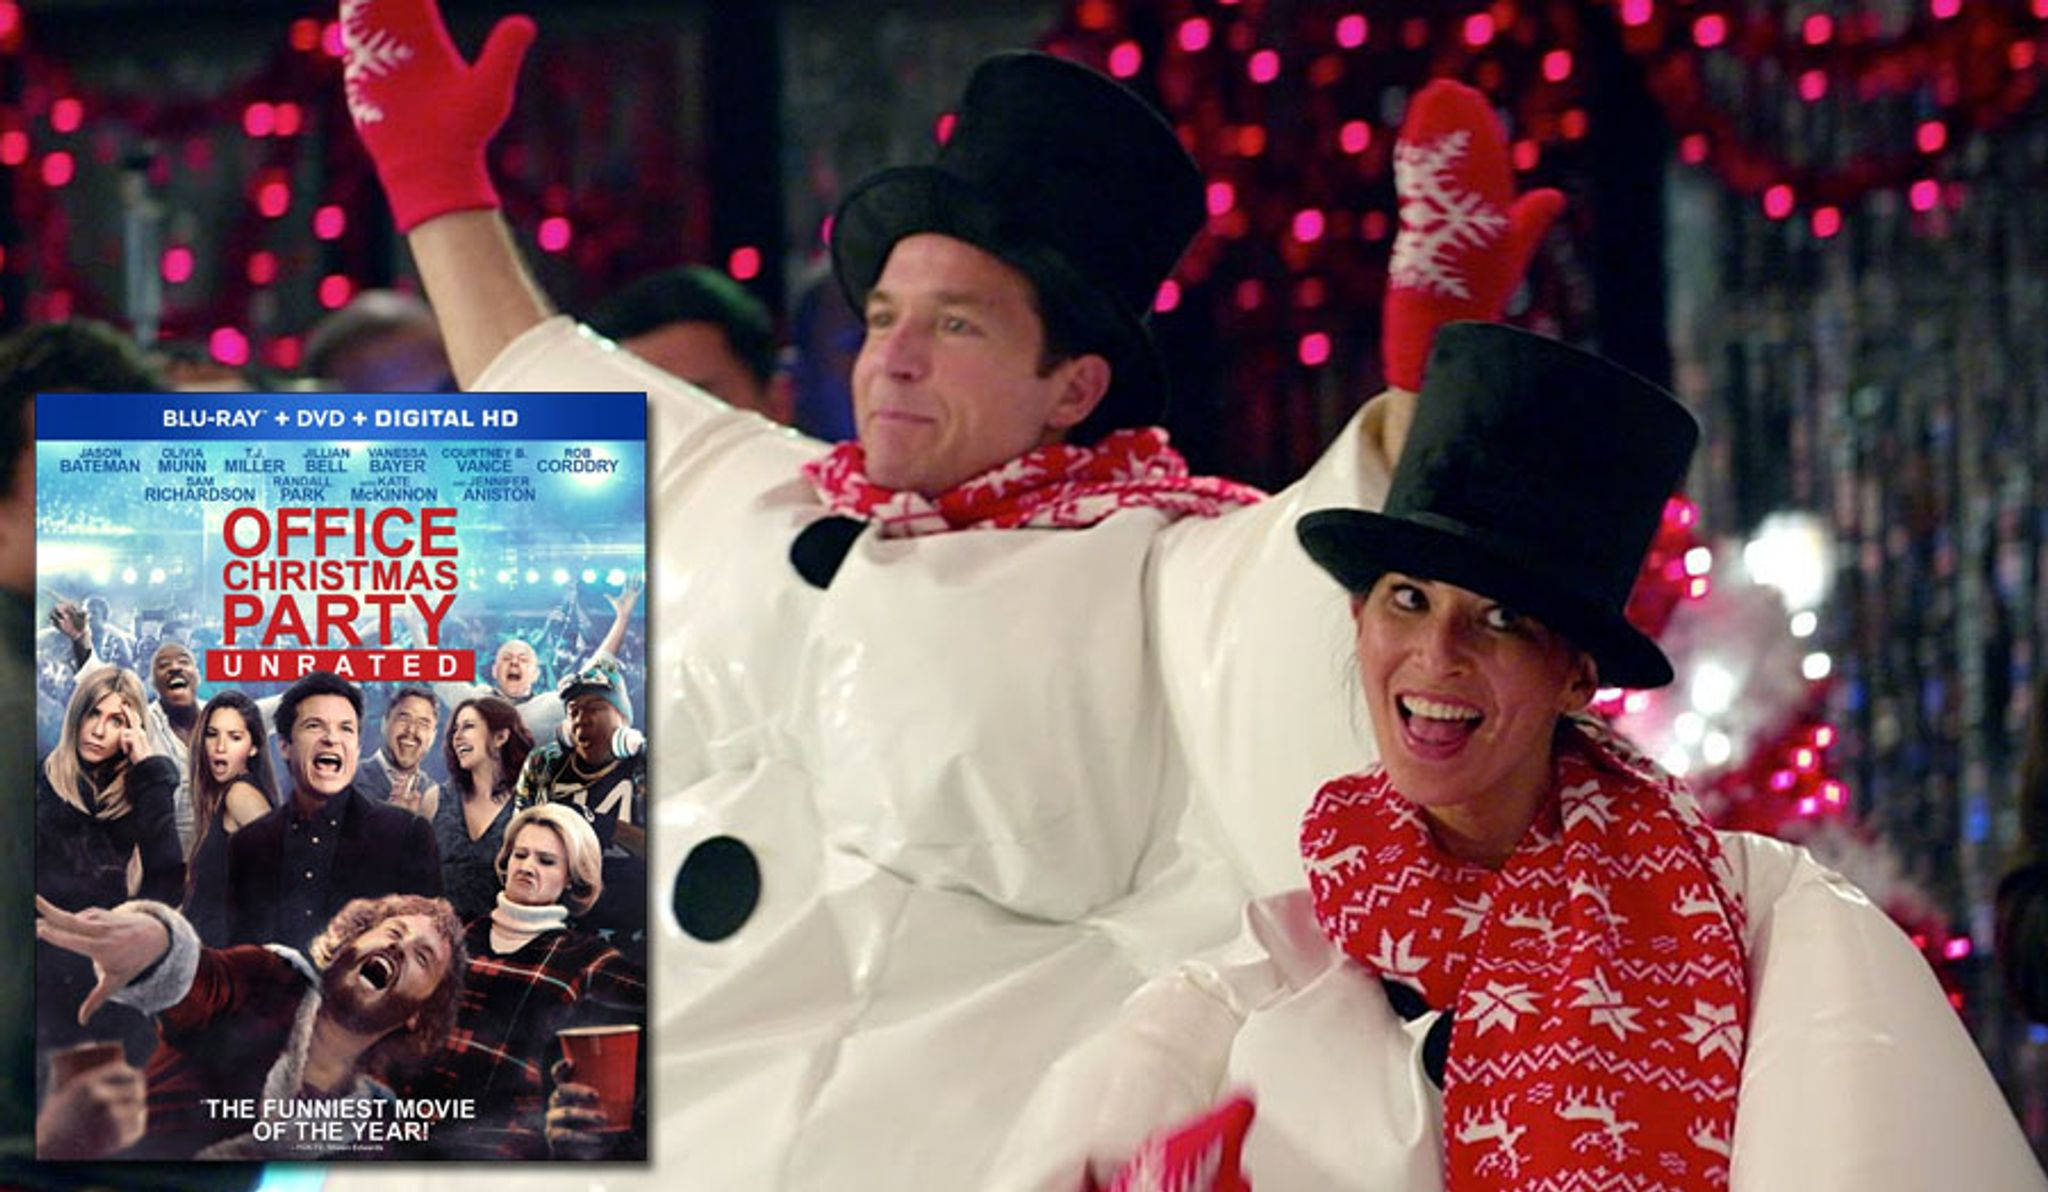 Blu-ray review: \'Office Christmas Party: Unrated\' - Washington Times